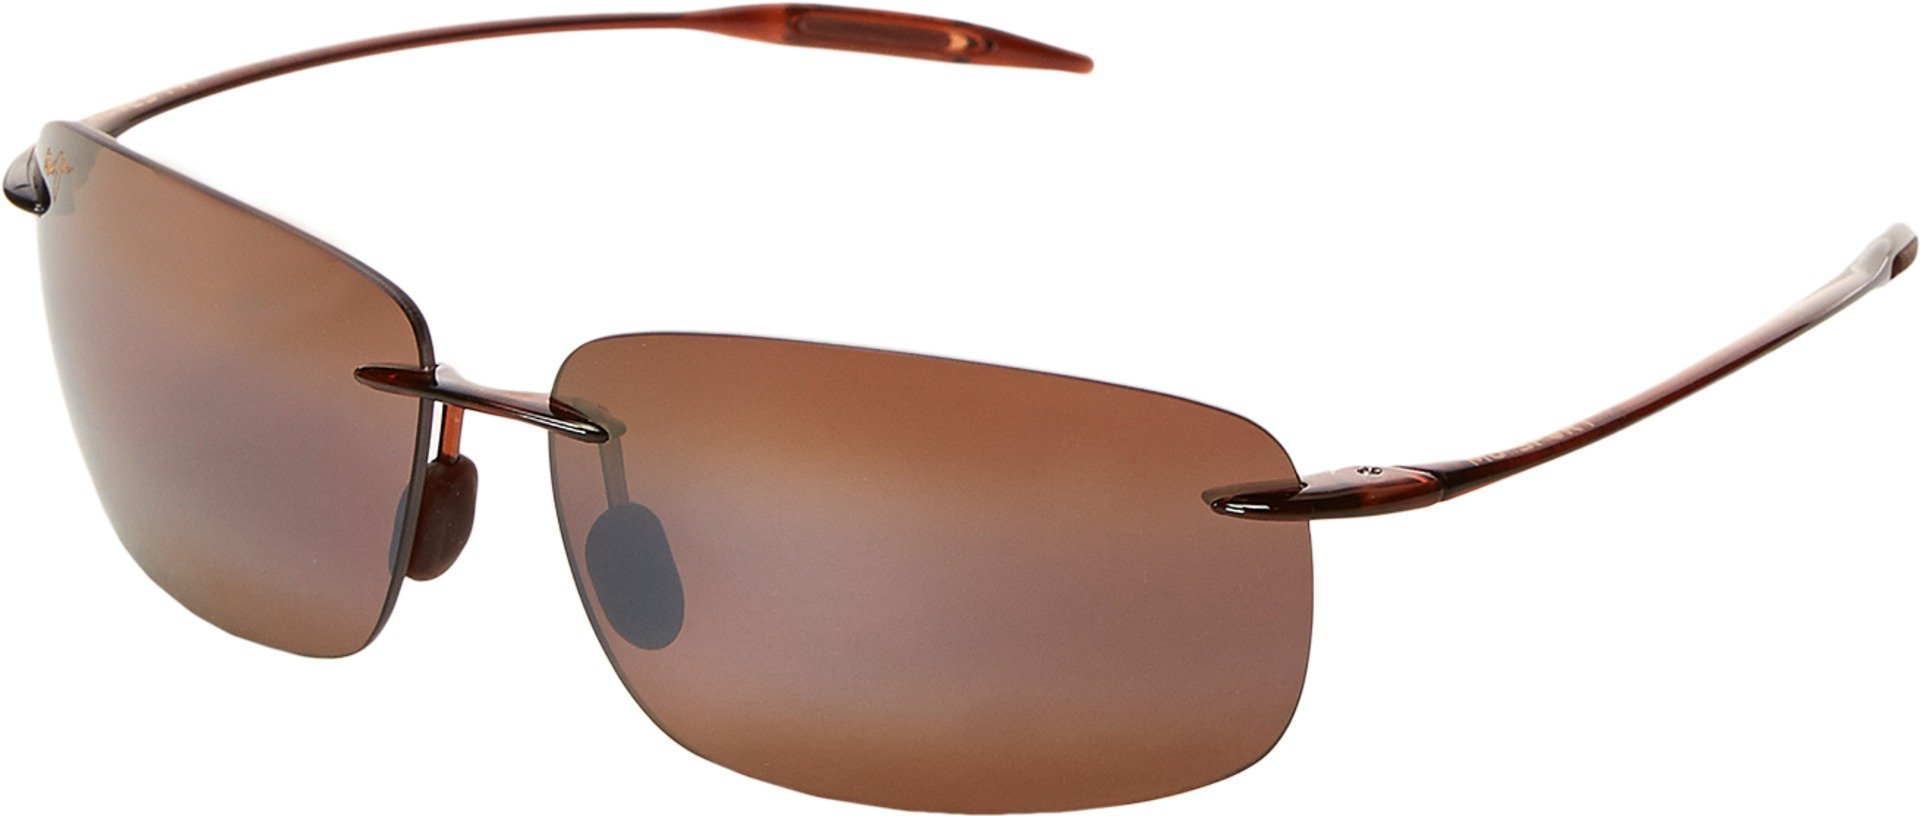 Maui Jim Breakwall H422-26 Polarized Square Sunglasses,Rootbeer Frame/HCL Bronze Lens,One Size